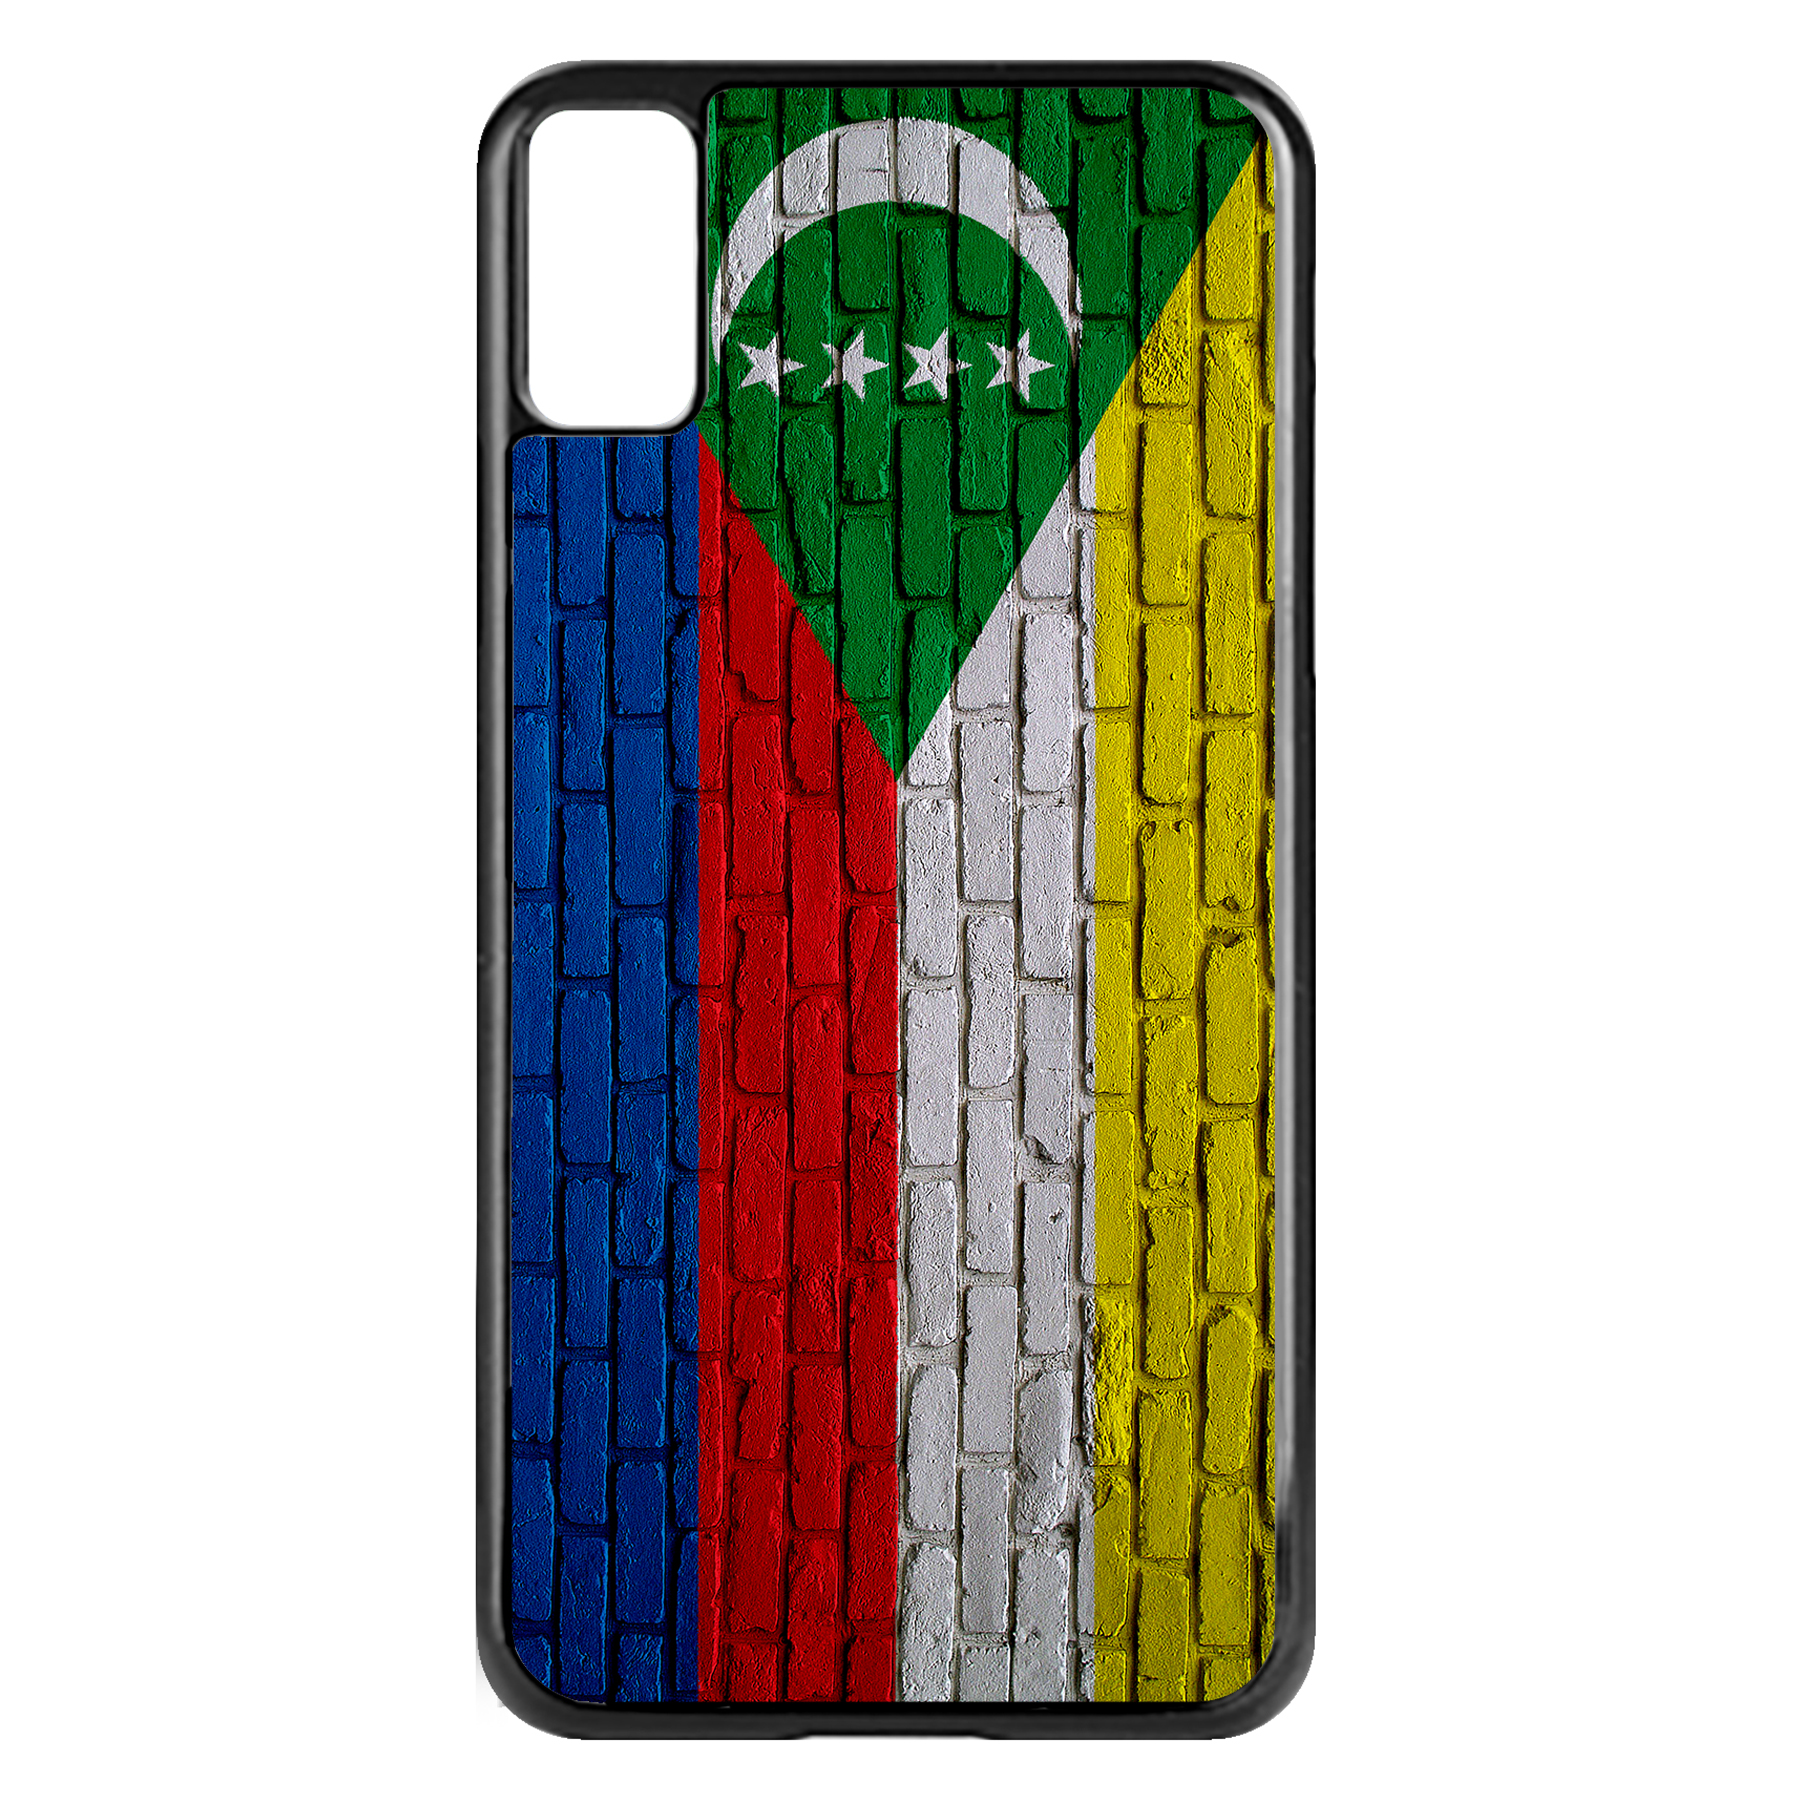 Apple-iPhone-Case-with-Flag-of-Comoros-Comorian-Many-Design-Options thumbnail 46